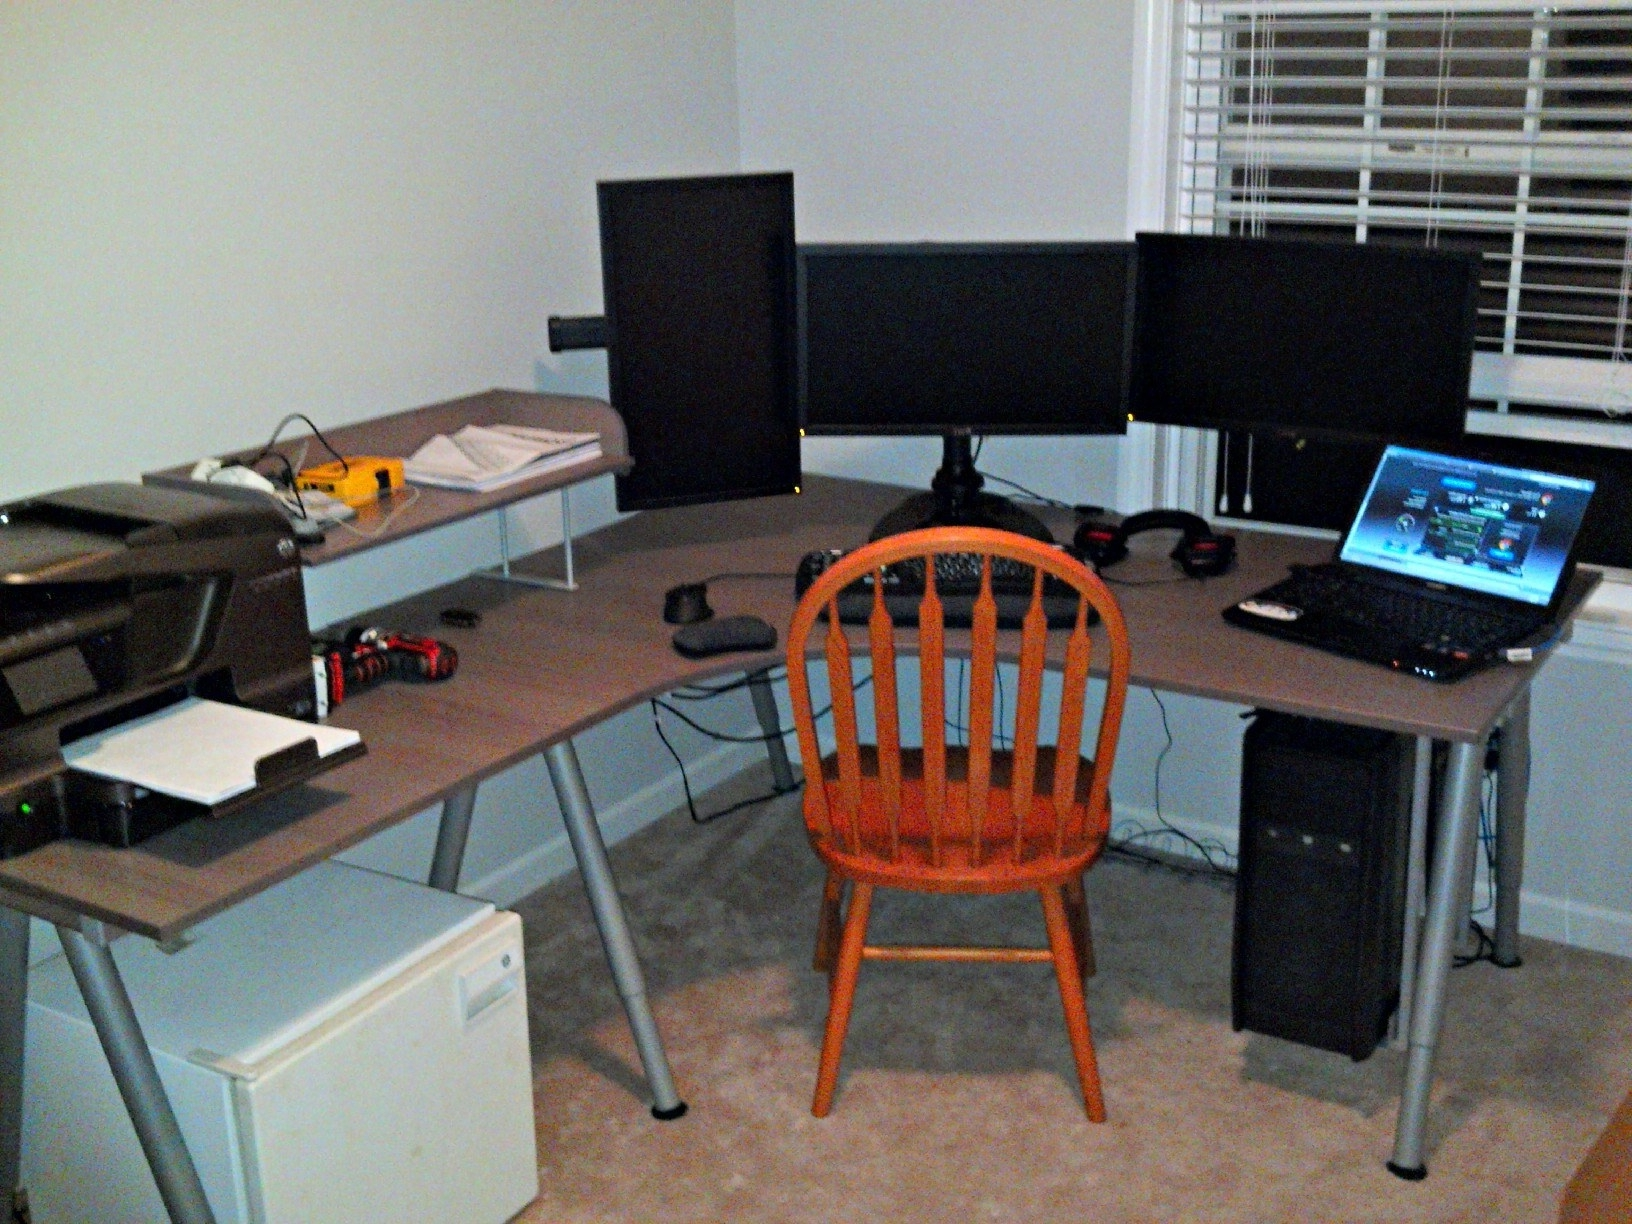 Widely Used Is The Ikea Galant The Go To Desk Of A Gamer? I'm Considering With Regard To Ikea Galant Computer Desks (View 20 of 20)